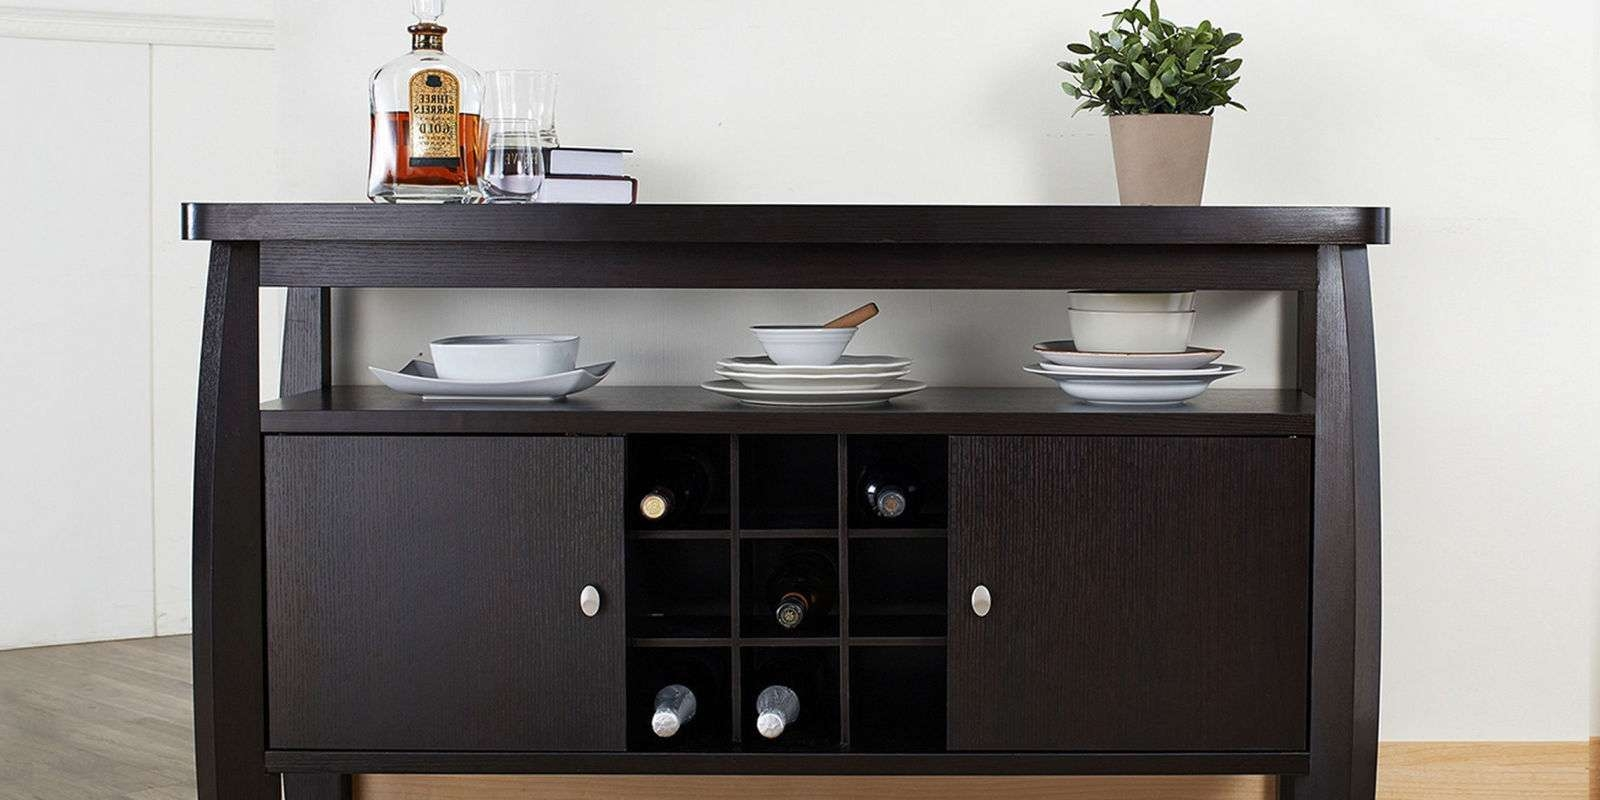 11 Best Sideboards And Buffets In 2018 – Reviews Of Sideboards Within Dining Buffets And Sideboards (Gallery 9 of 20)